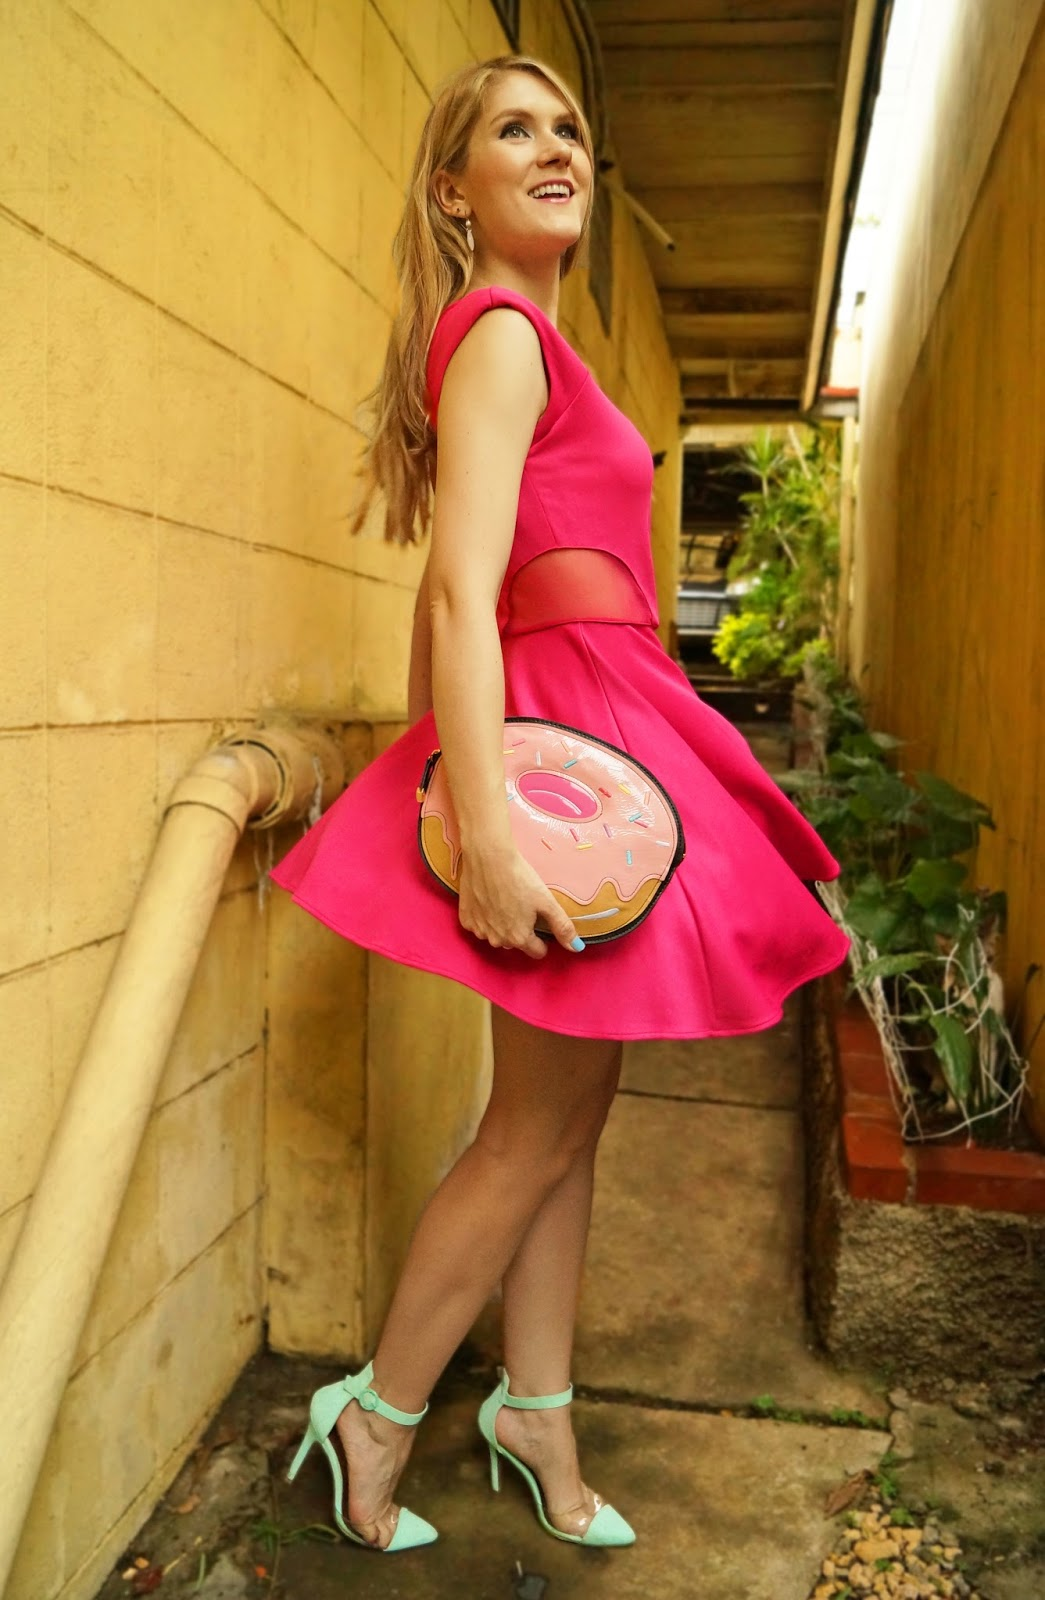 Click through to find 2 other ways to wear a simple pink dress!